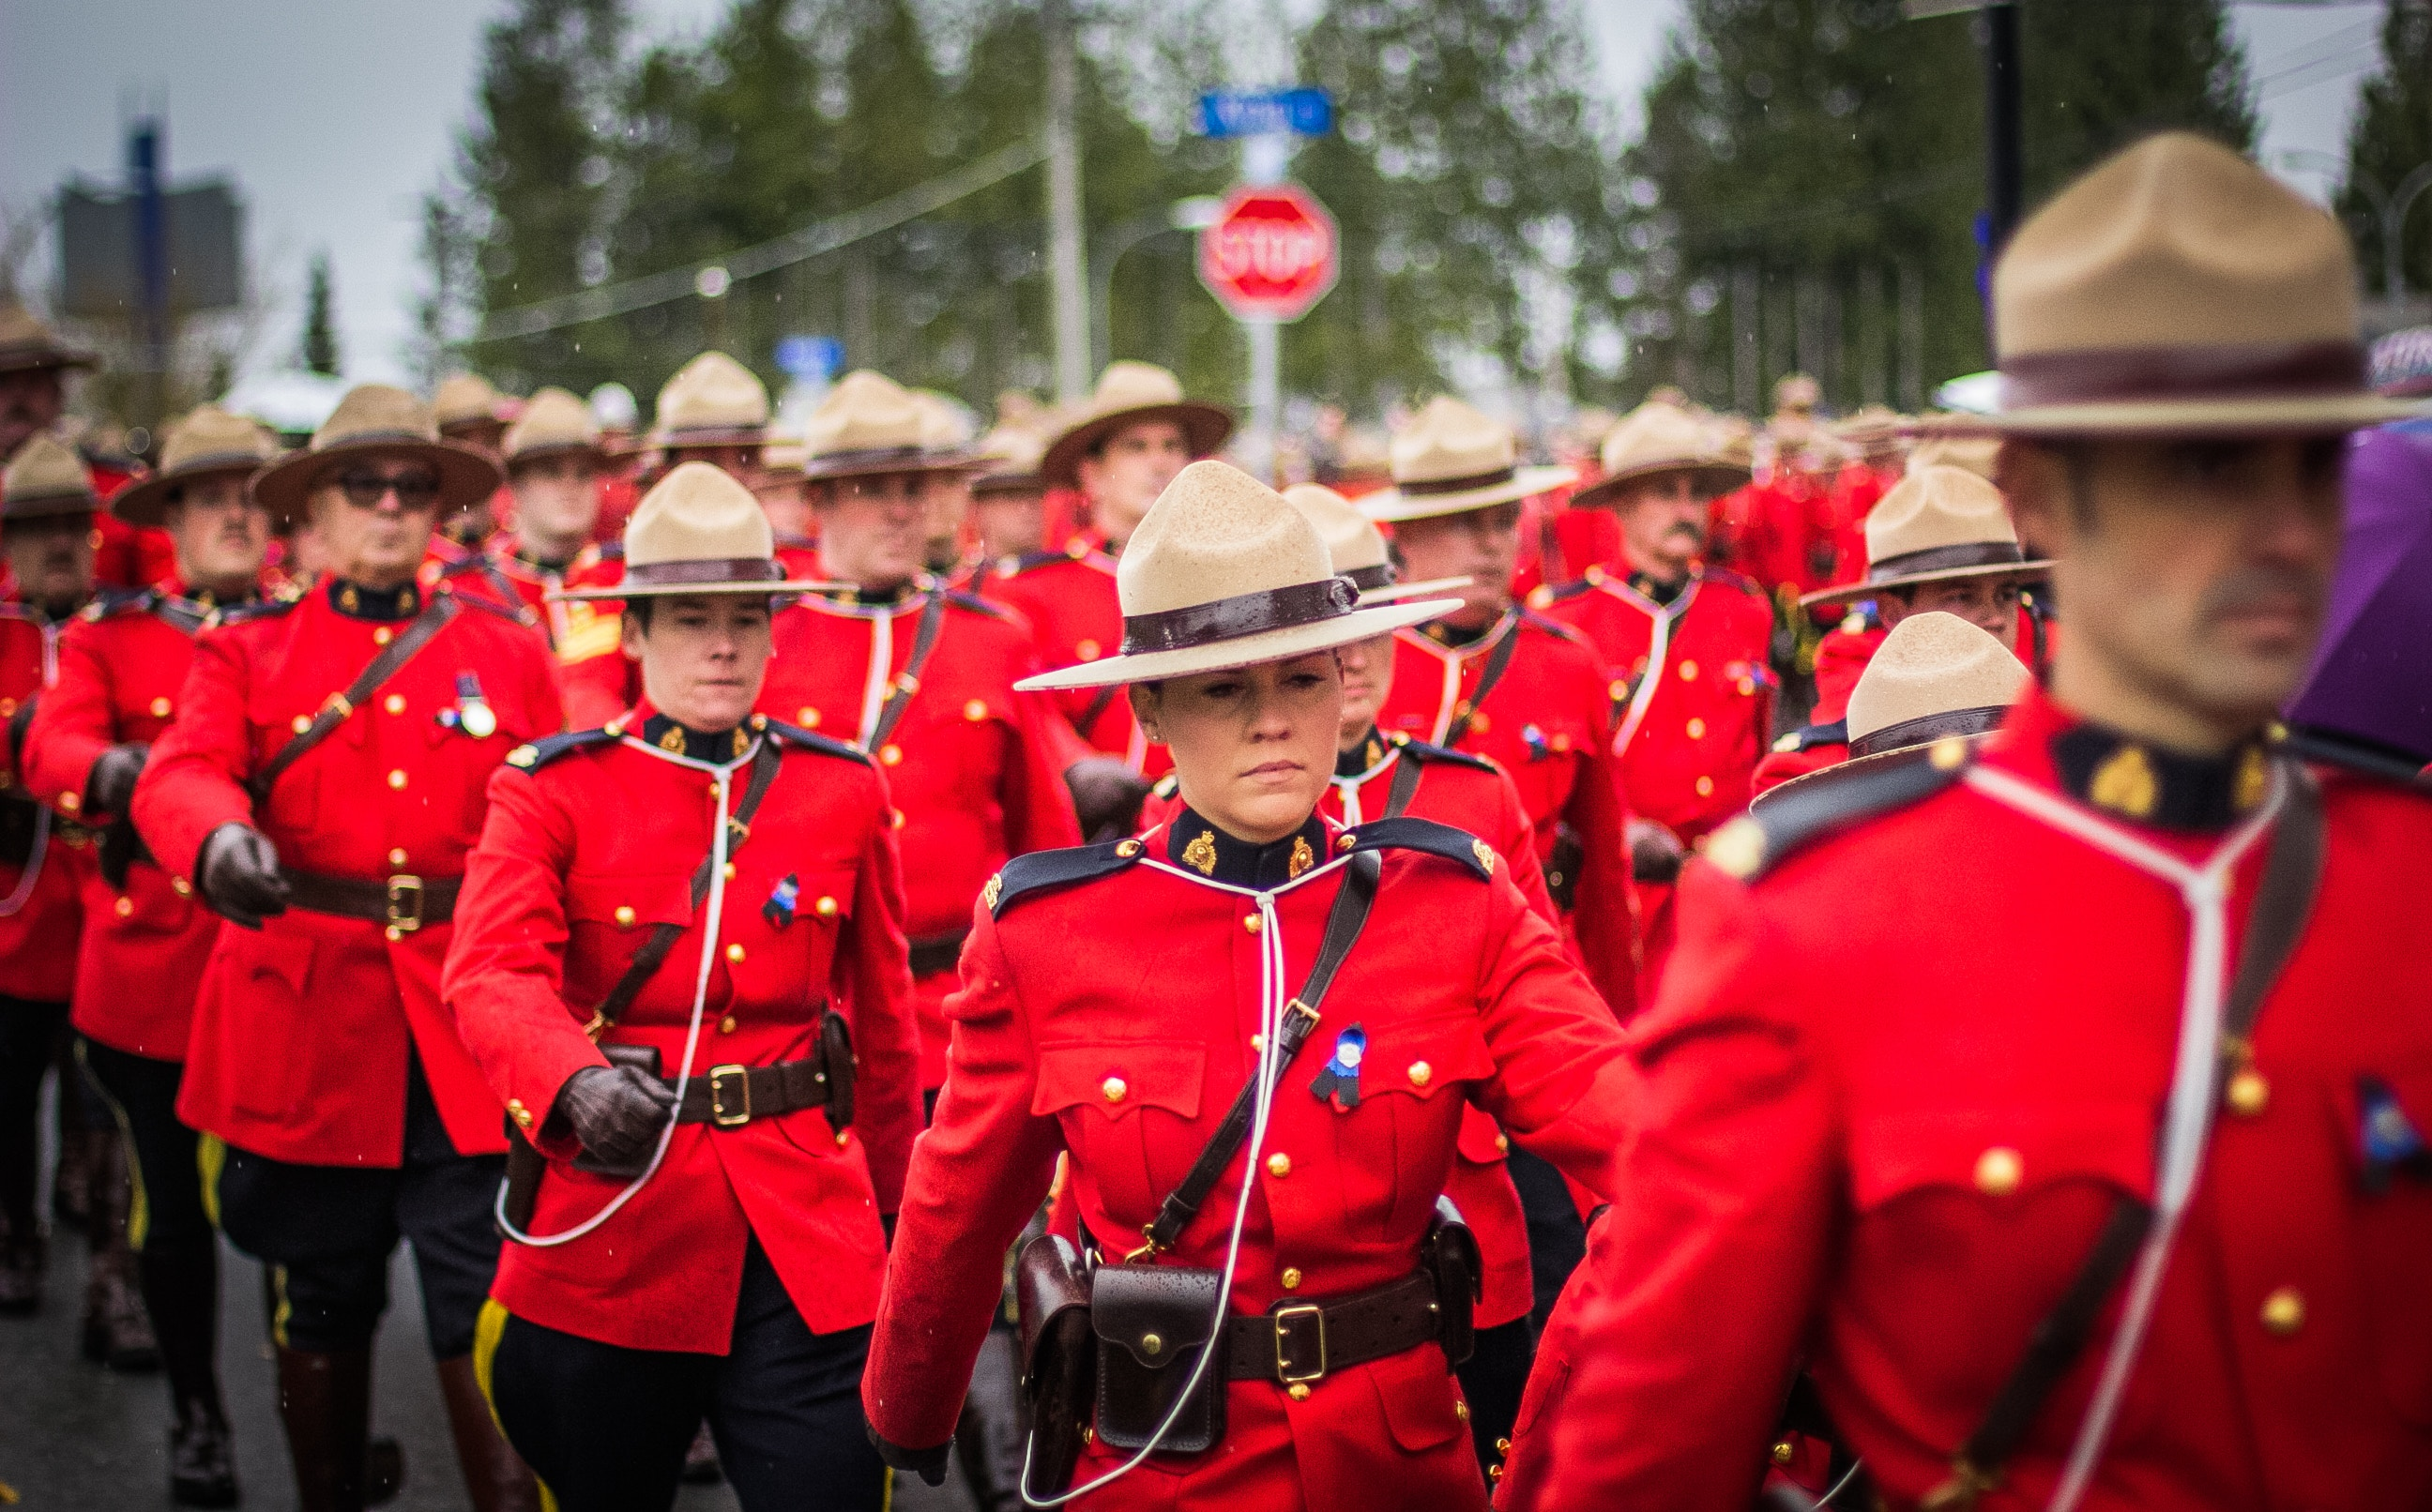 Mounties-Canada-Uniforms-Marching-Photo-Difficult-Accent-Language-Learning